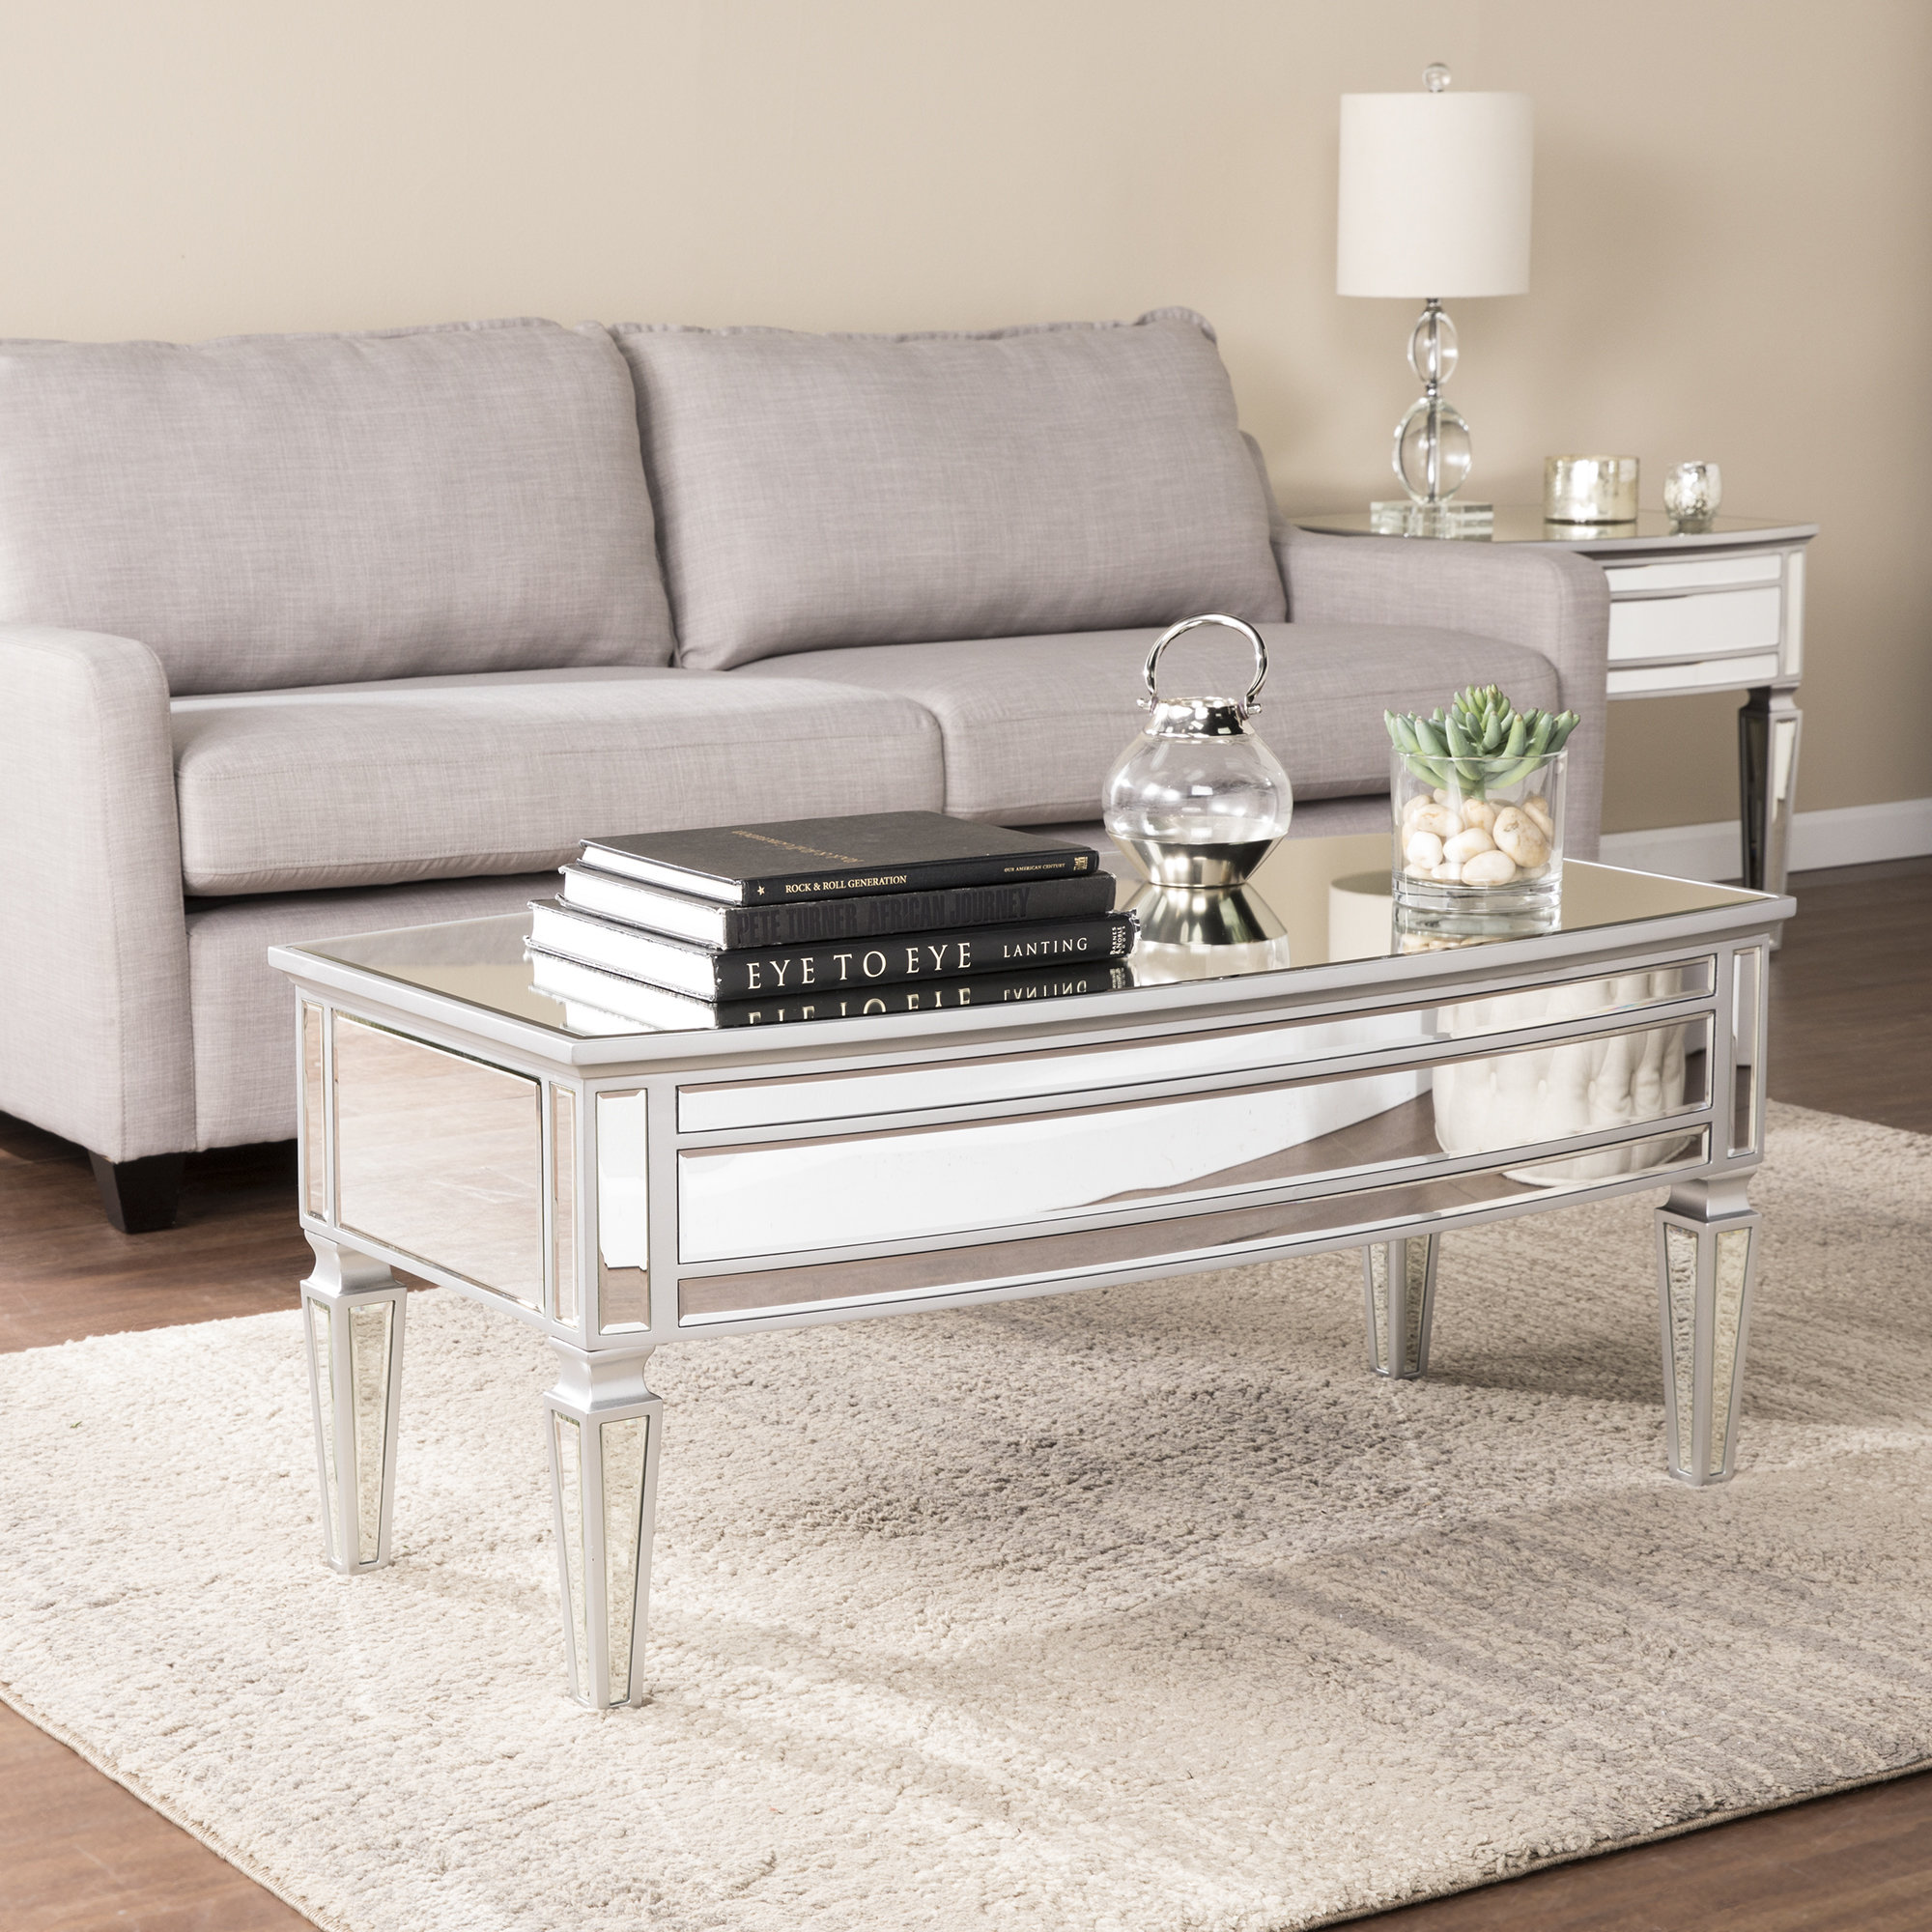 mirror coffee table sets you love elosie piece set diamond mirrored accent asian inspired lamps modern wooden designs light colored wood end tables round cymbal stand west elm